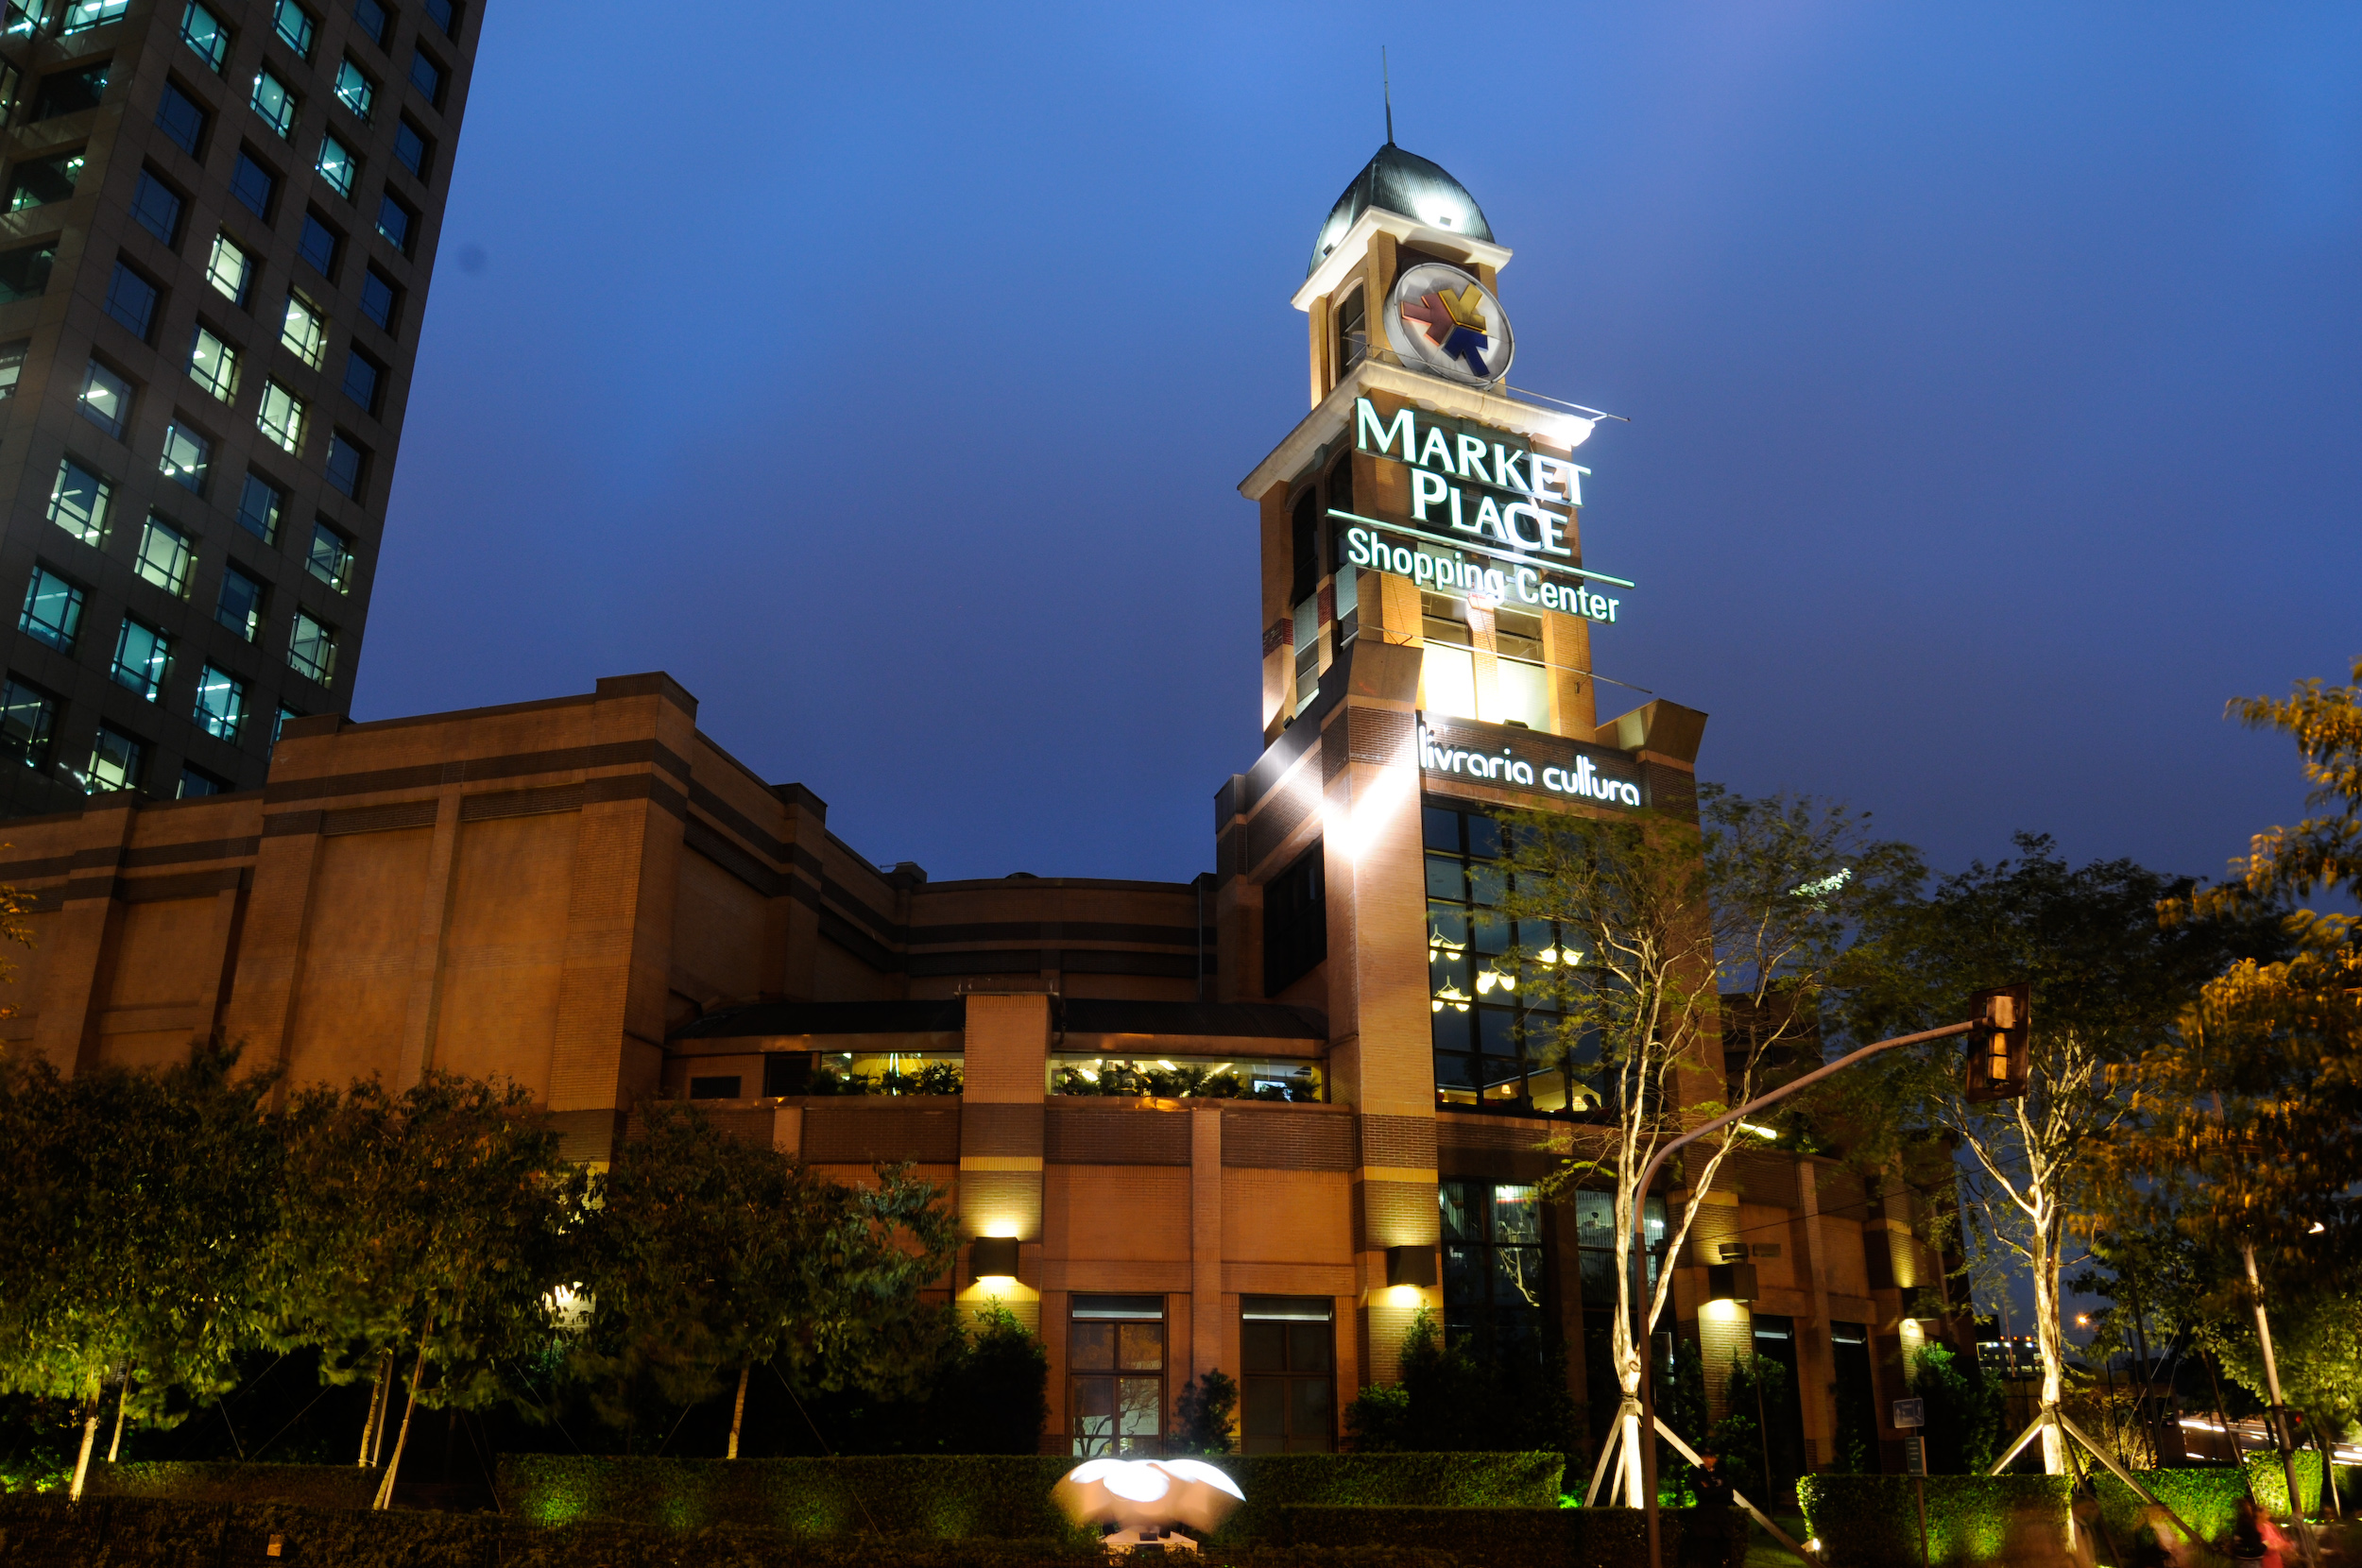 Market Place is one of four malls the company Iguatemi operates in São Paulo.